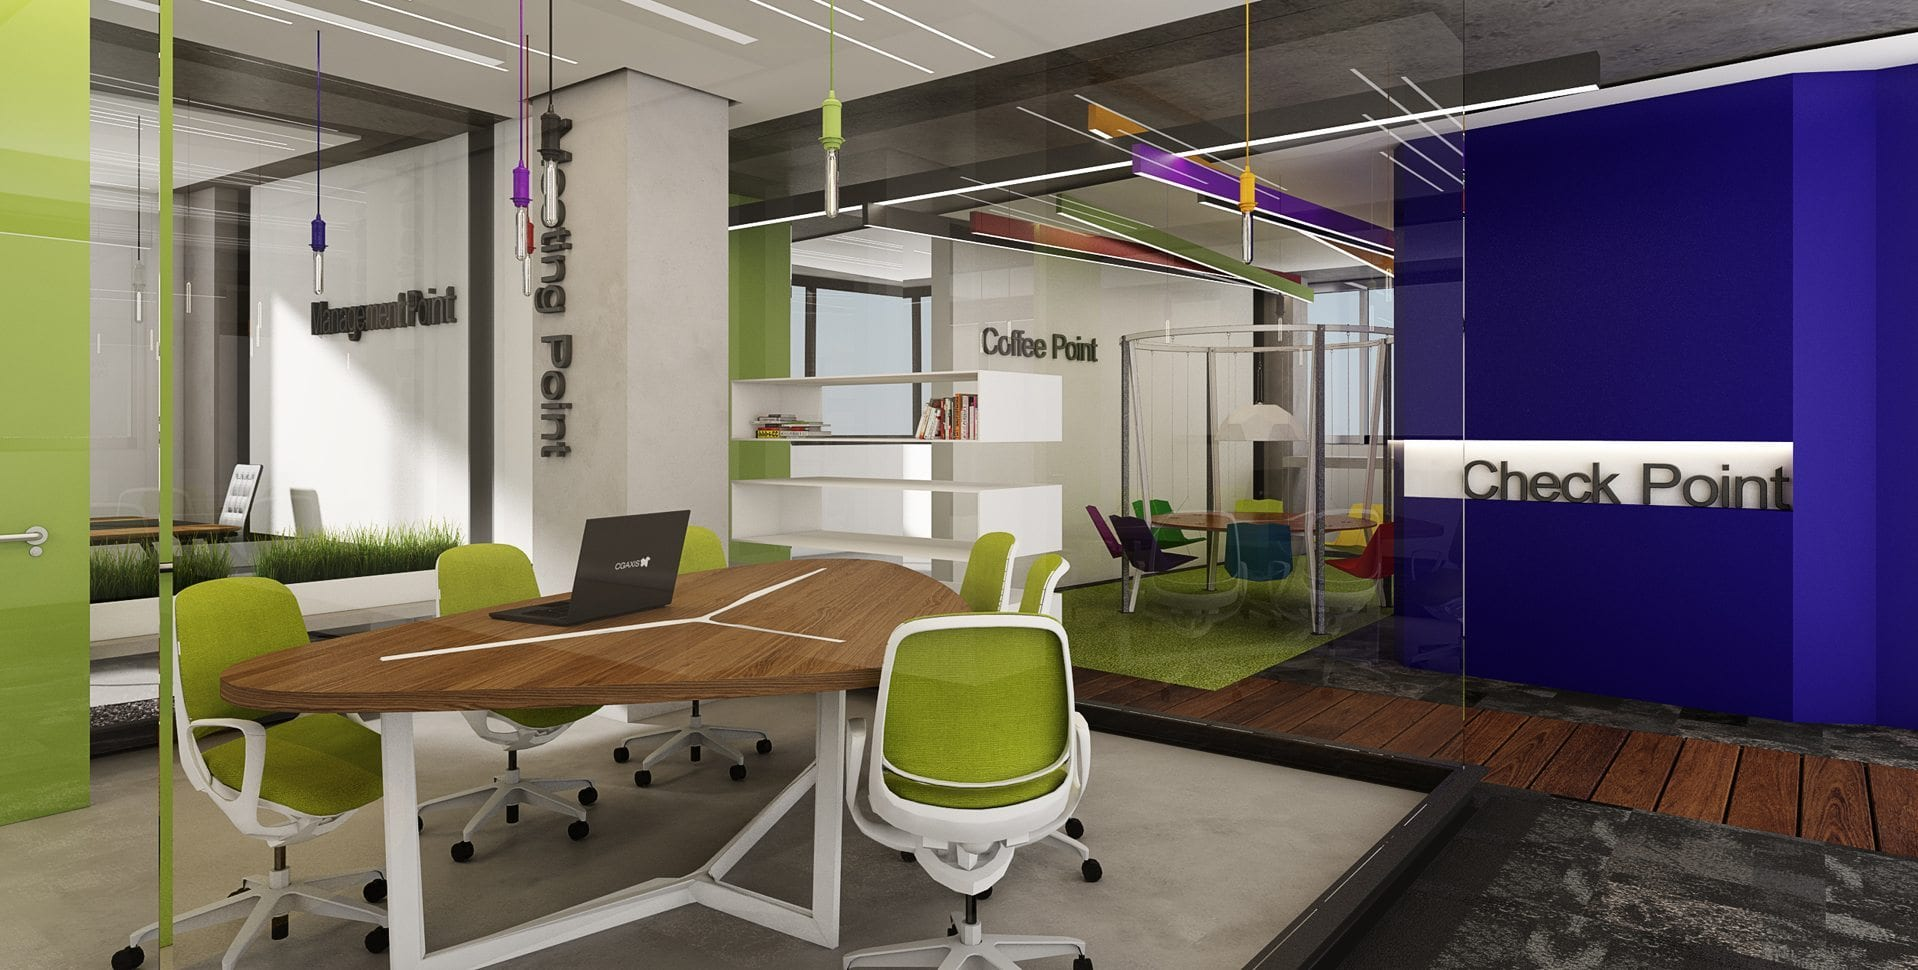 Maayan-Golan_Architectural-Visualization_ office-interior-visualization_meeting-room_check-point-milan_architect-dunsky-architects_02